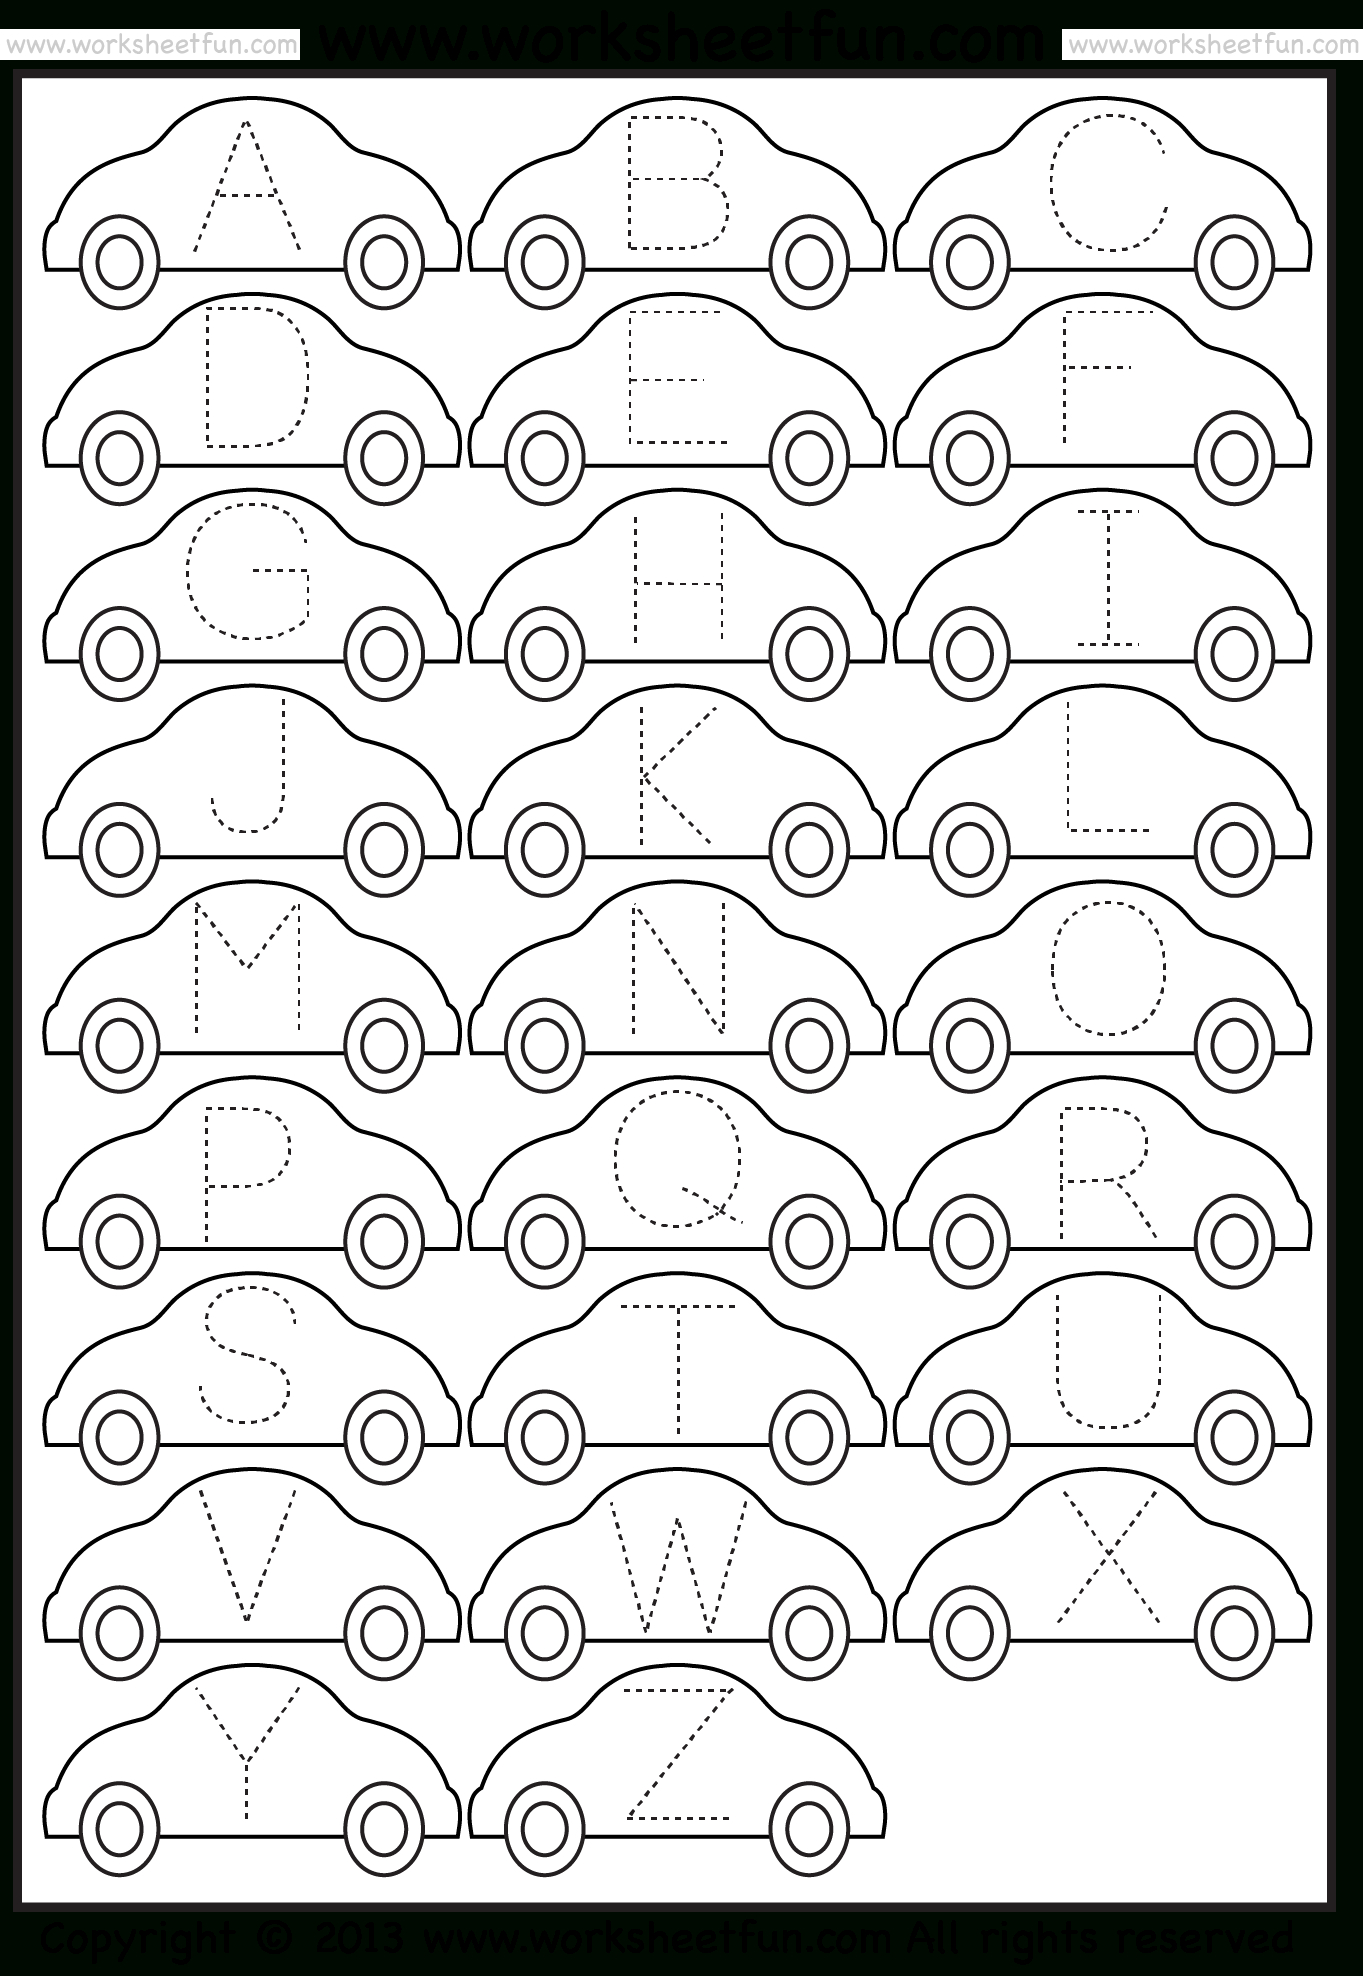 Tracing – Letter Tracing  Free Printable Worksheets – Worksheetfun Intended For Preschool Tracing Worksheets